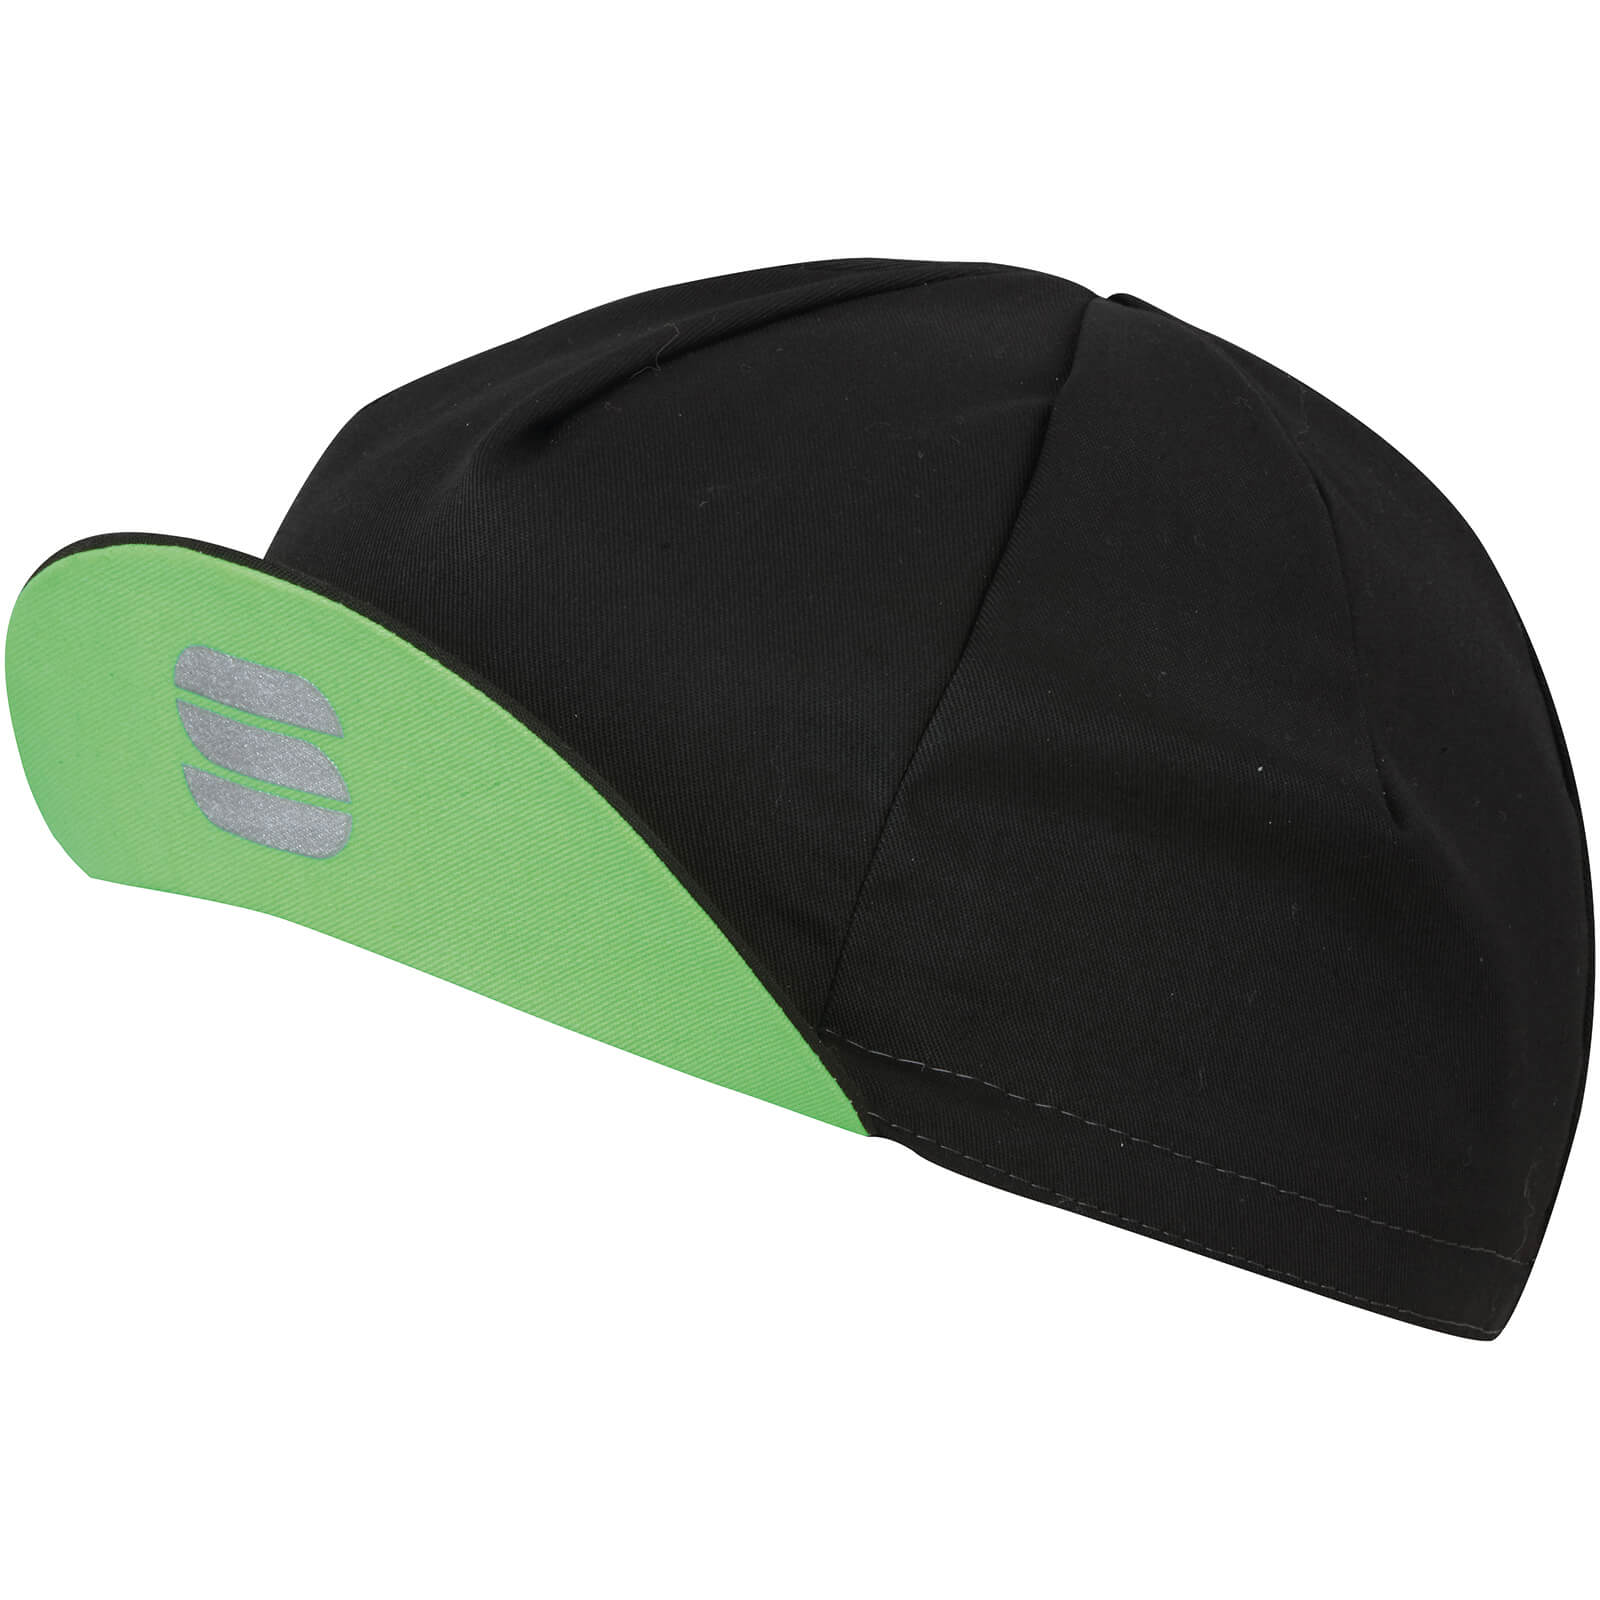 Sportful Infinite Cap - Black/Green Fluo